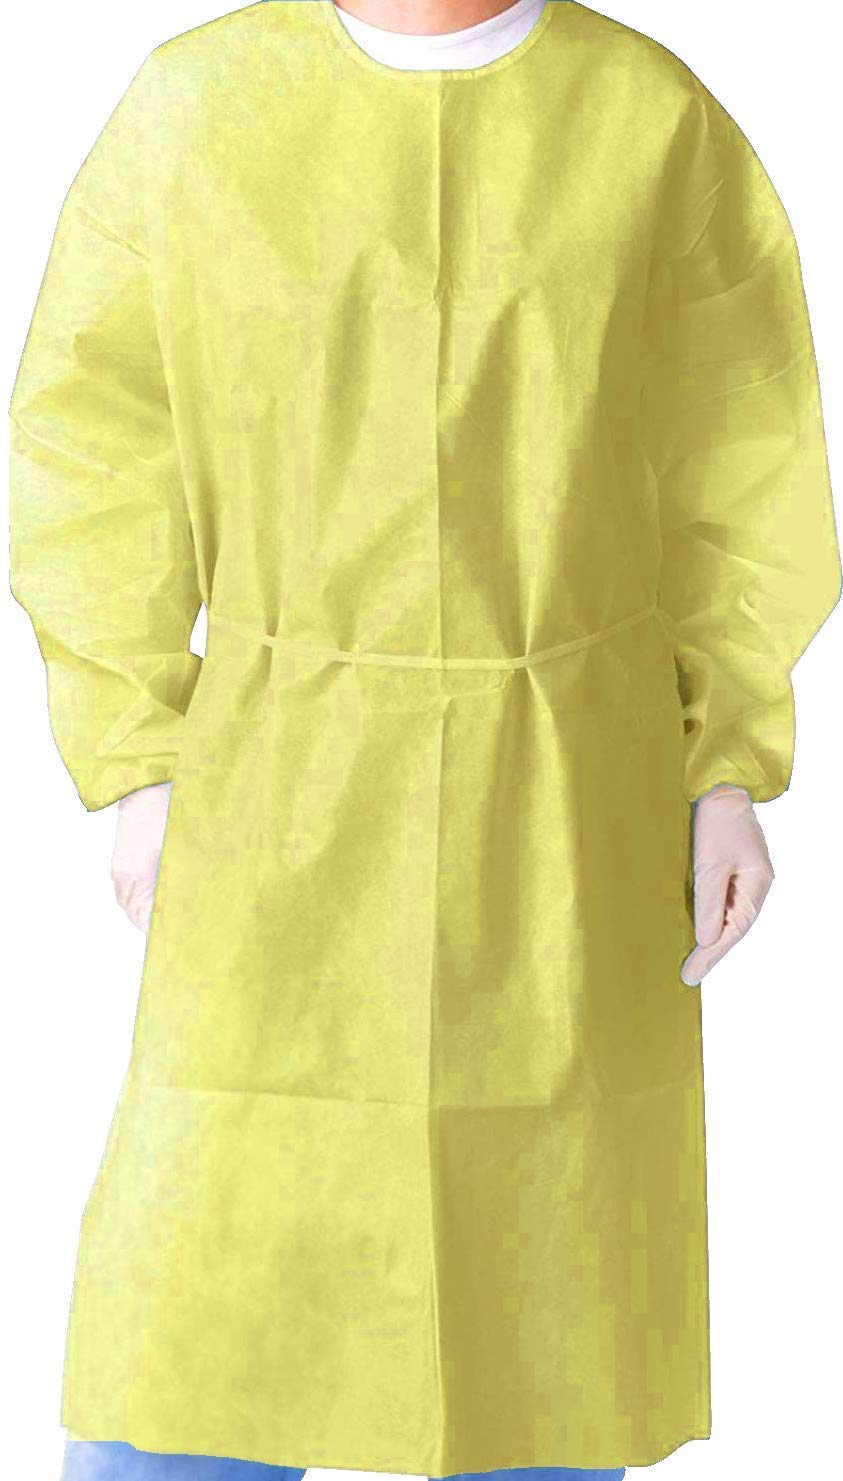 Isolation Gown with Elastic Cuff -Disposable Non-Woven Blue- Case//50 pcs Splash Resistant one size fits all